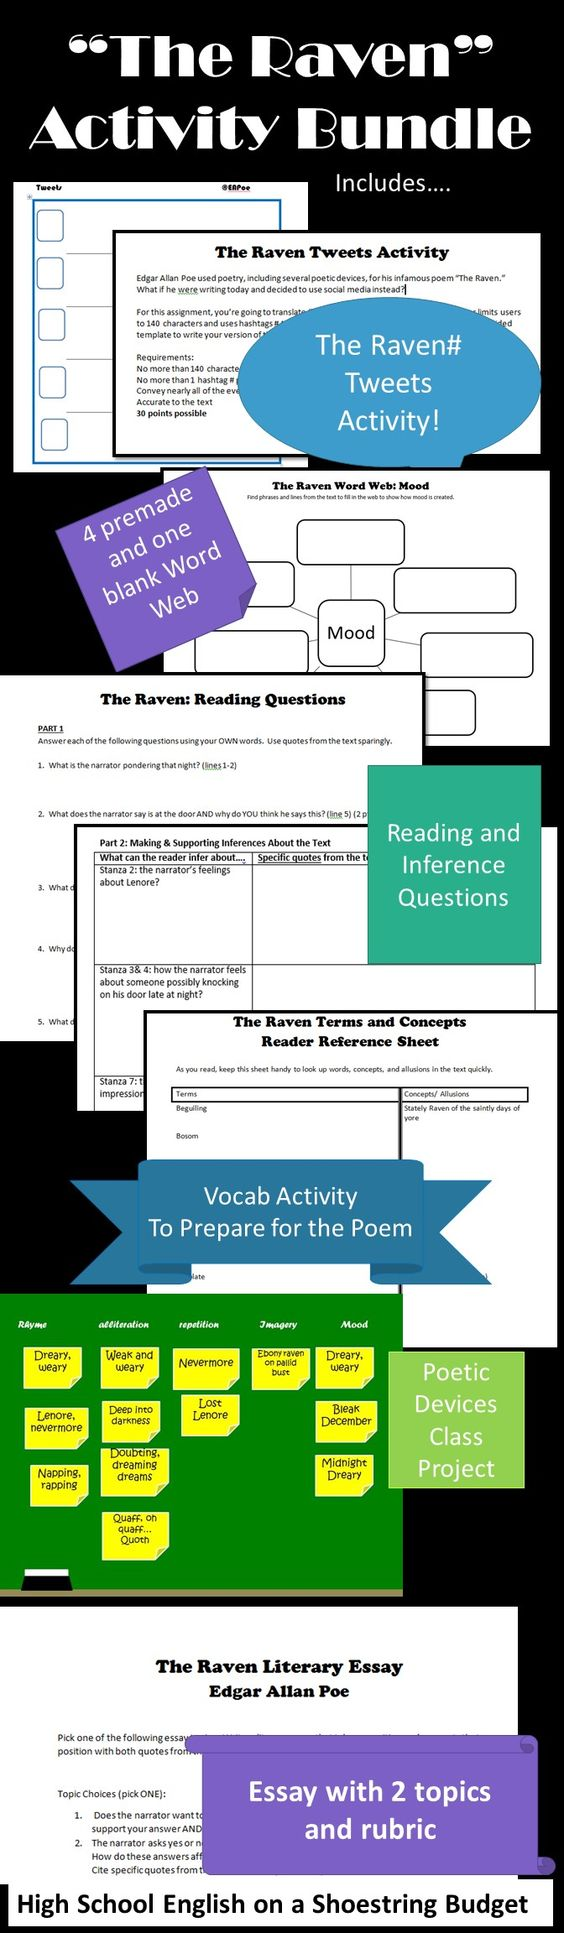 the raven activity bundle edgar allan poe pdf activities the set of activities for us the poem the raven by edgar allan poe includes reading questions graphic organizers vocabulary and literary essay